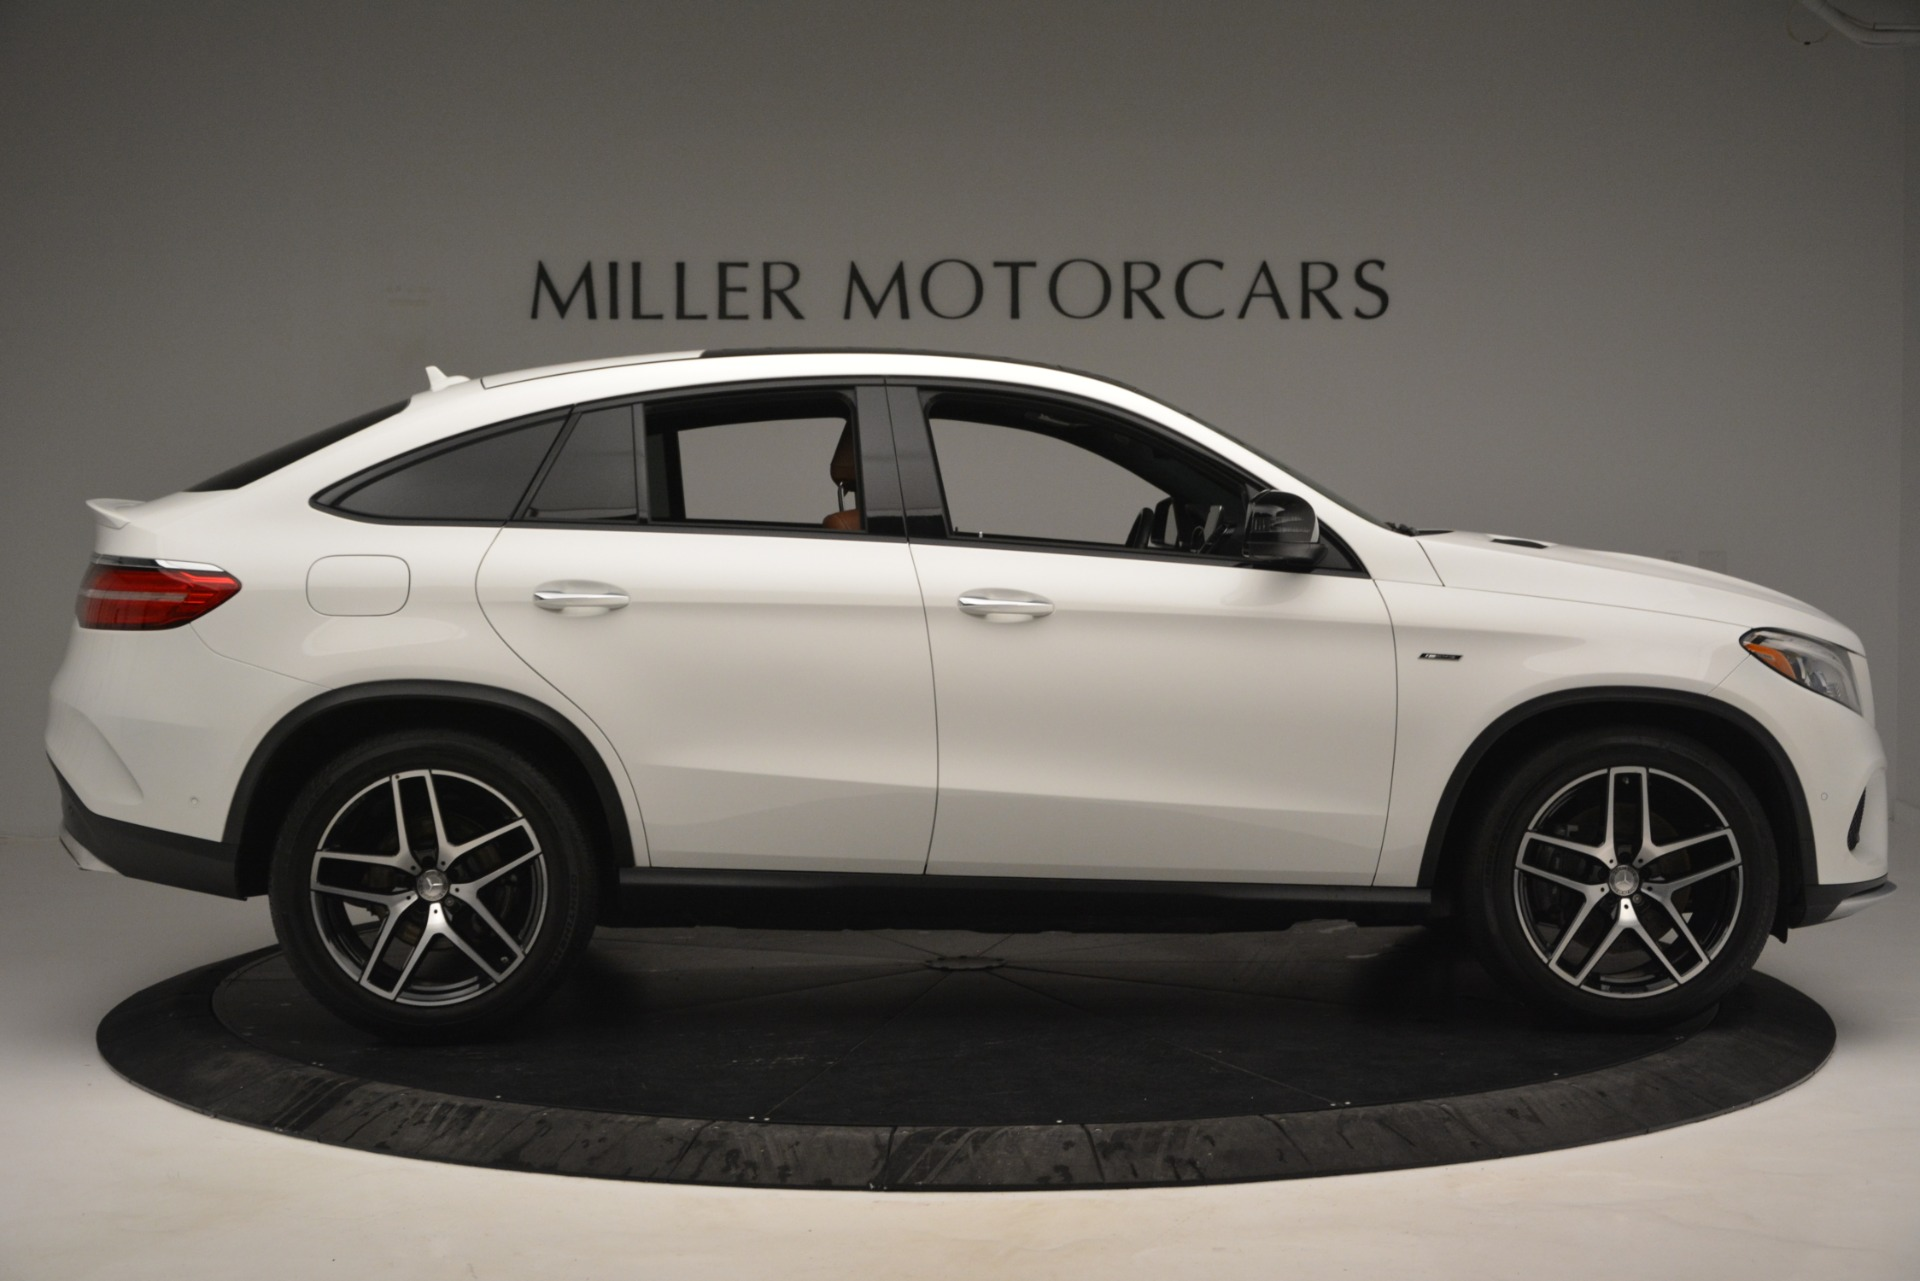 Used 2016 Mercedes-Benz GLE 450 AMG Coupe 4MATIC For Sale In Greenwich, CT 2787_p9